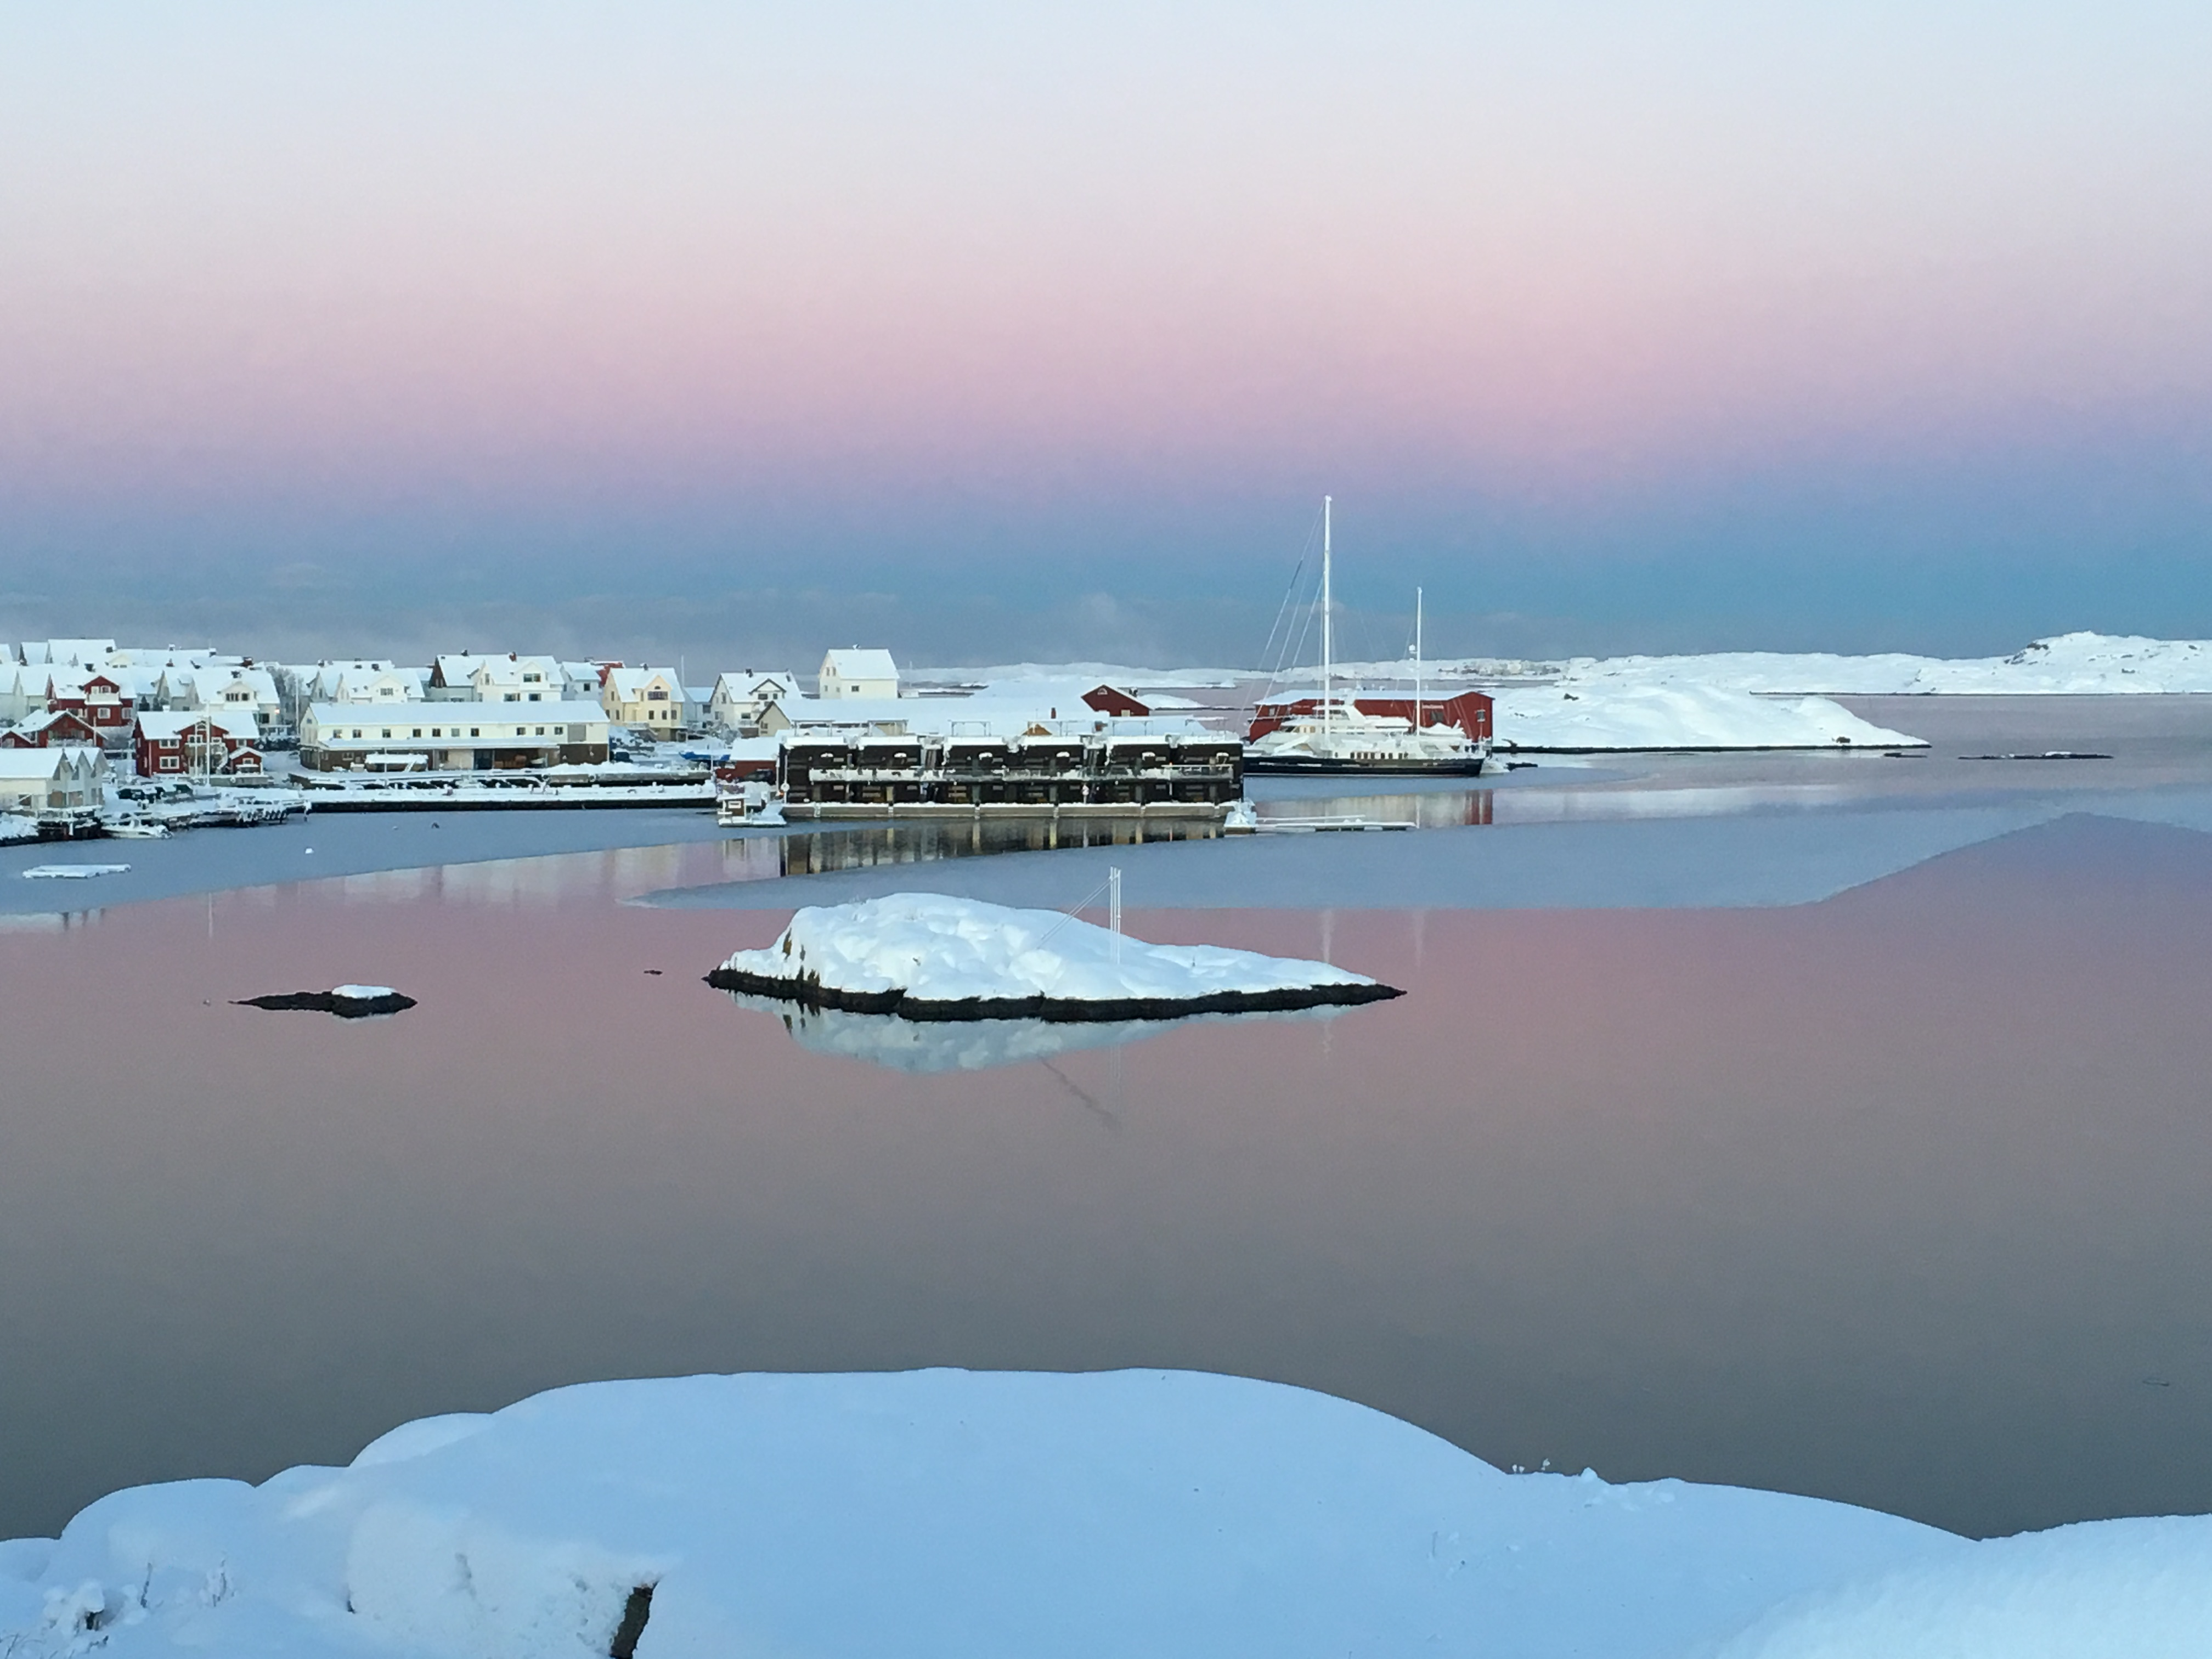 salt-and-sill-floating-hotel-winter